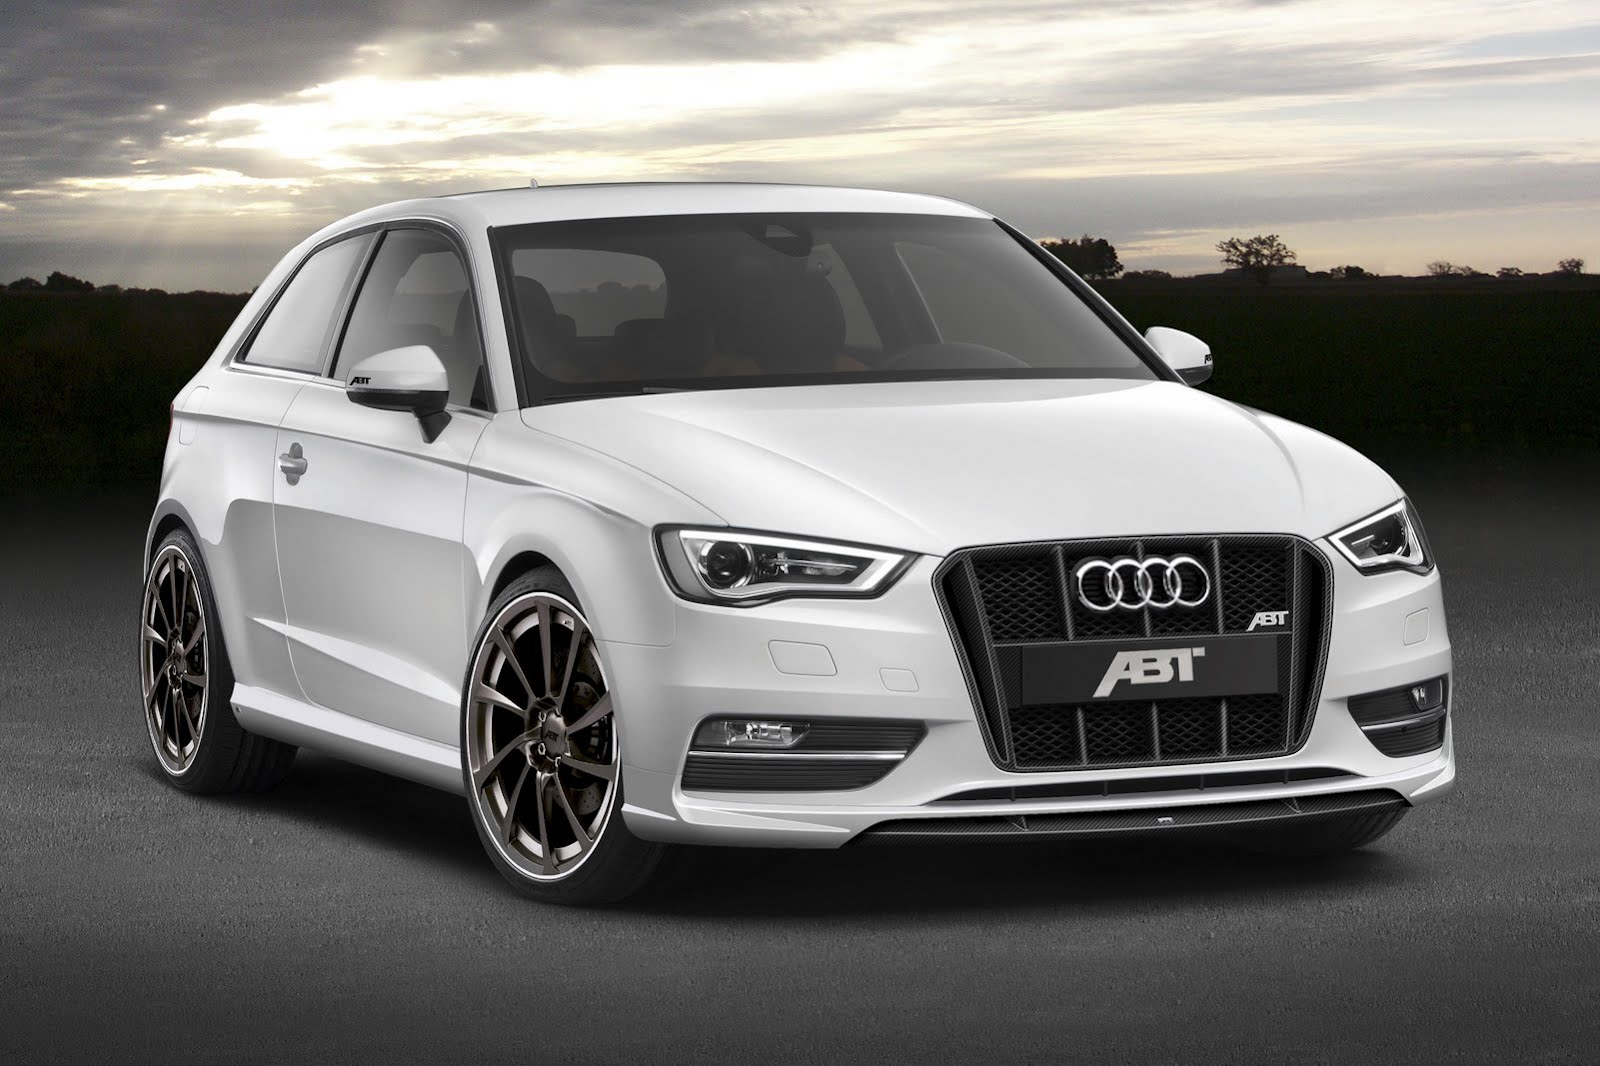 All-new Audi A3 tuned by ABT Sportsline